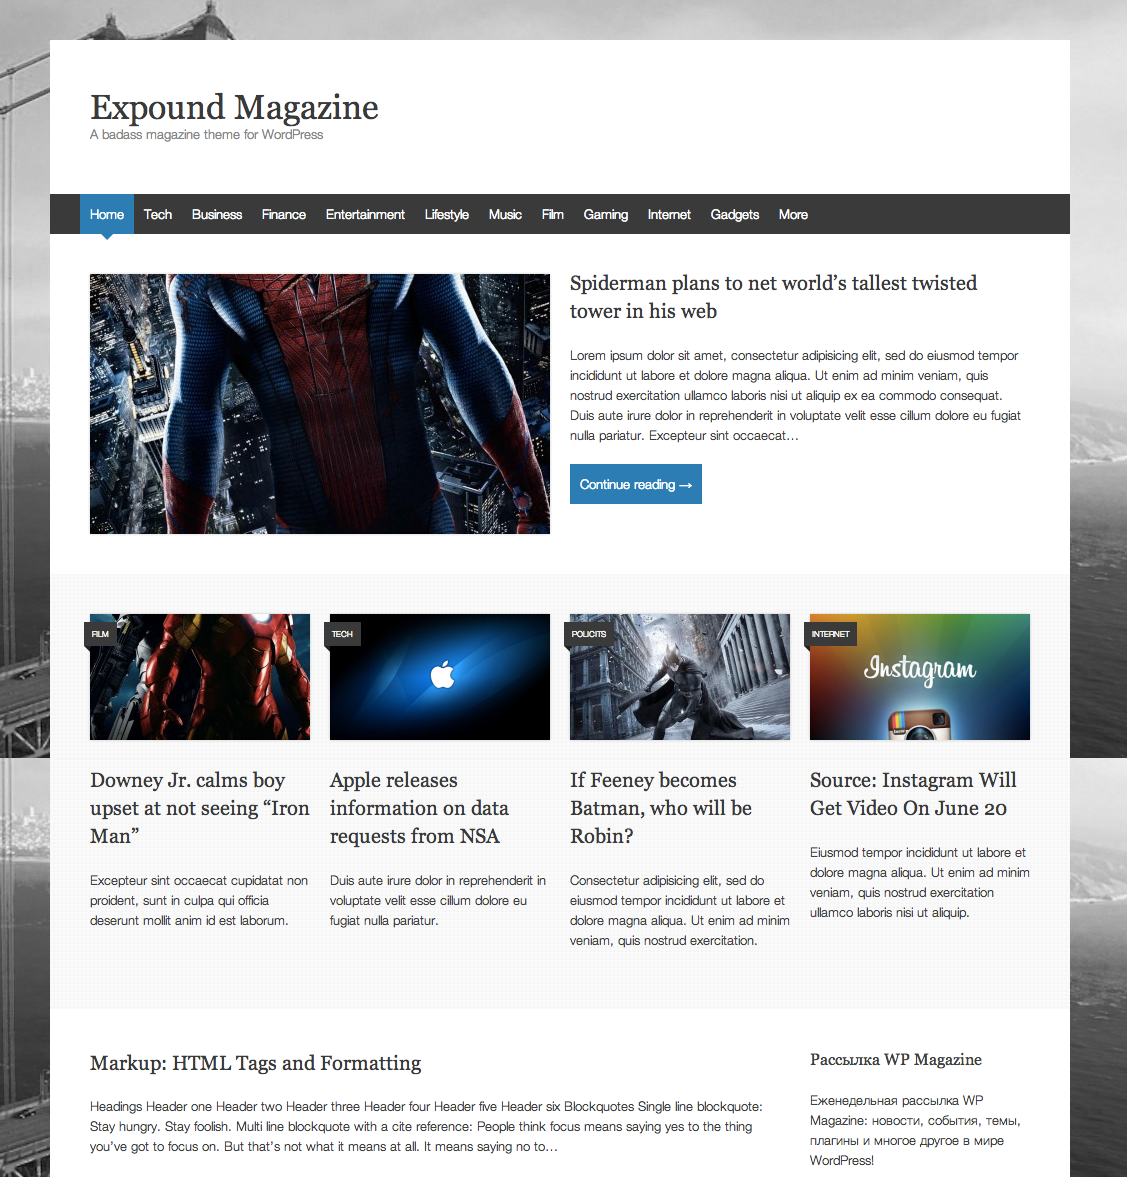 Expound Magazine Theme for WordPress